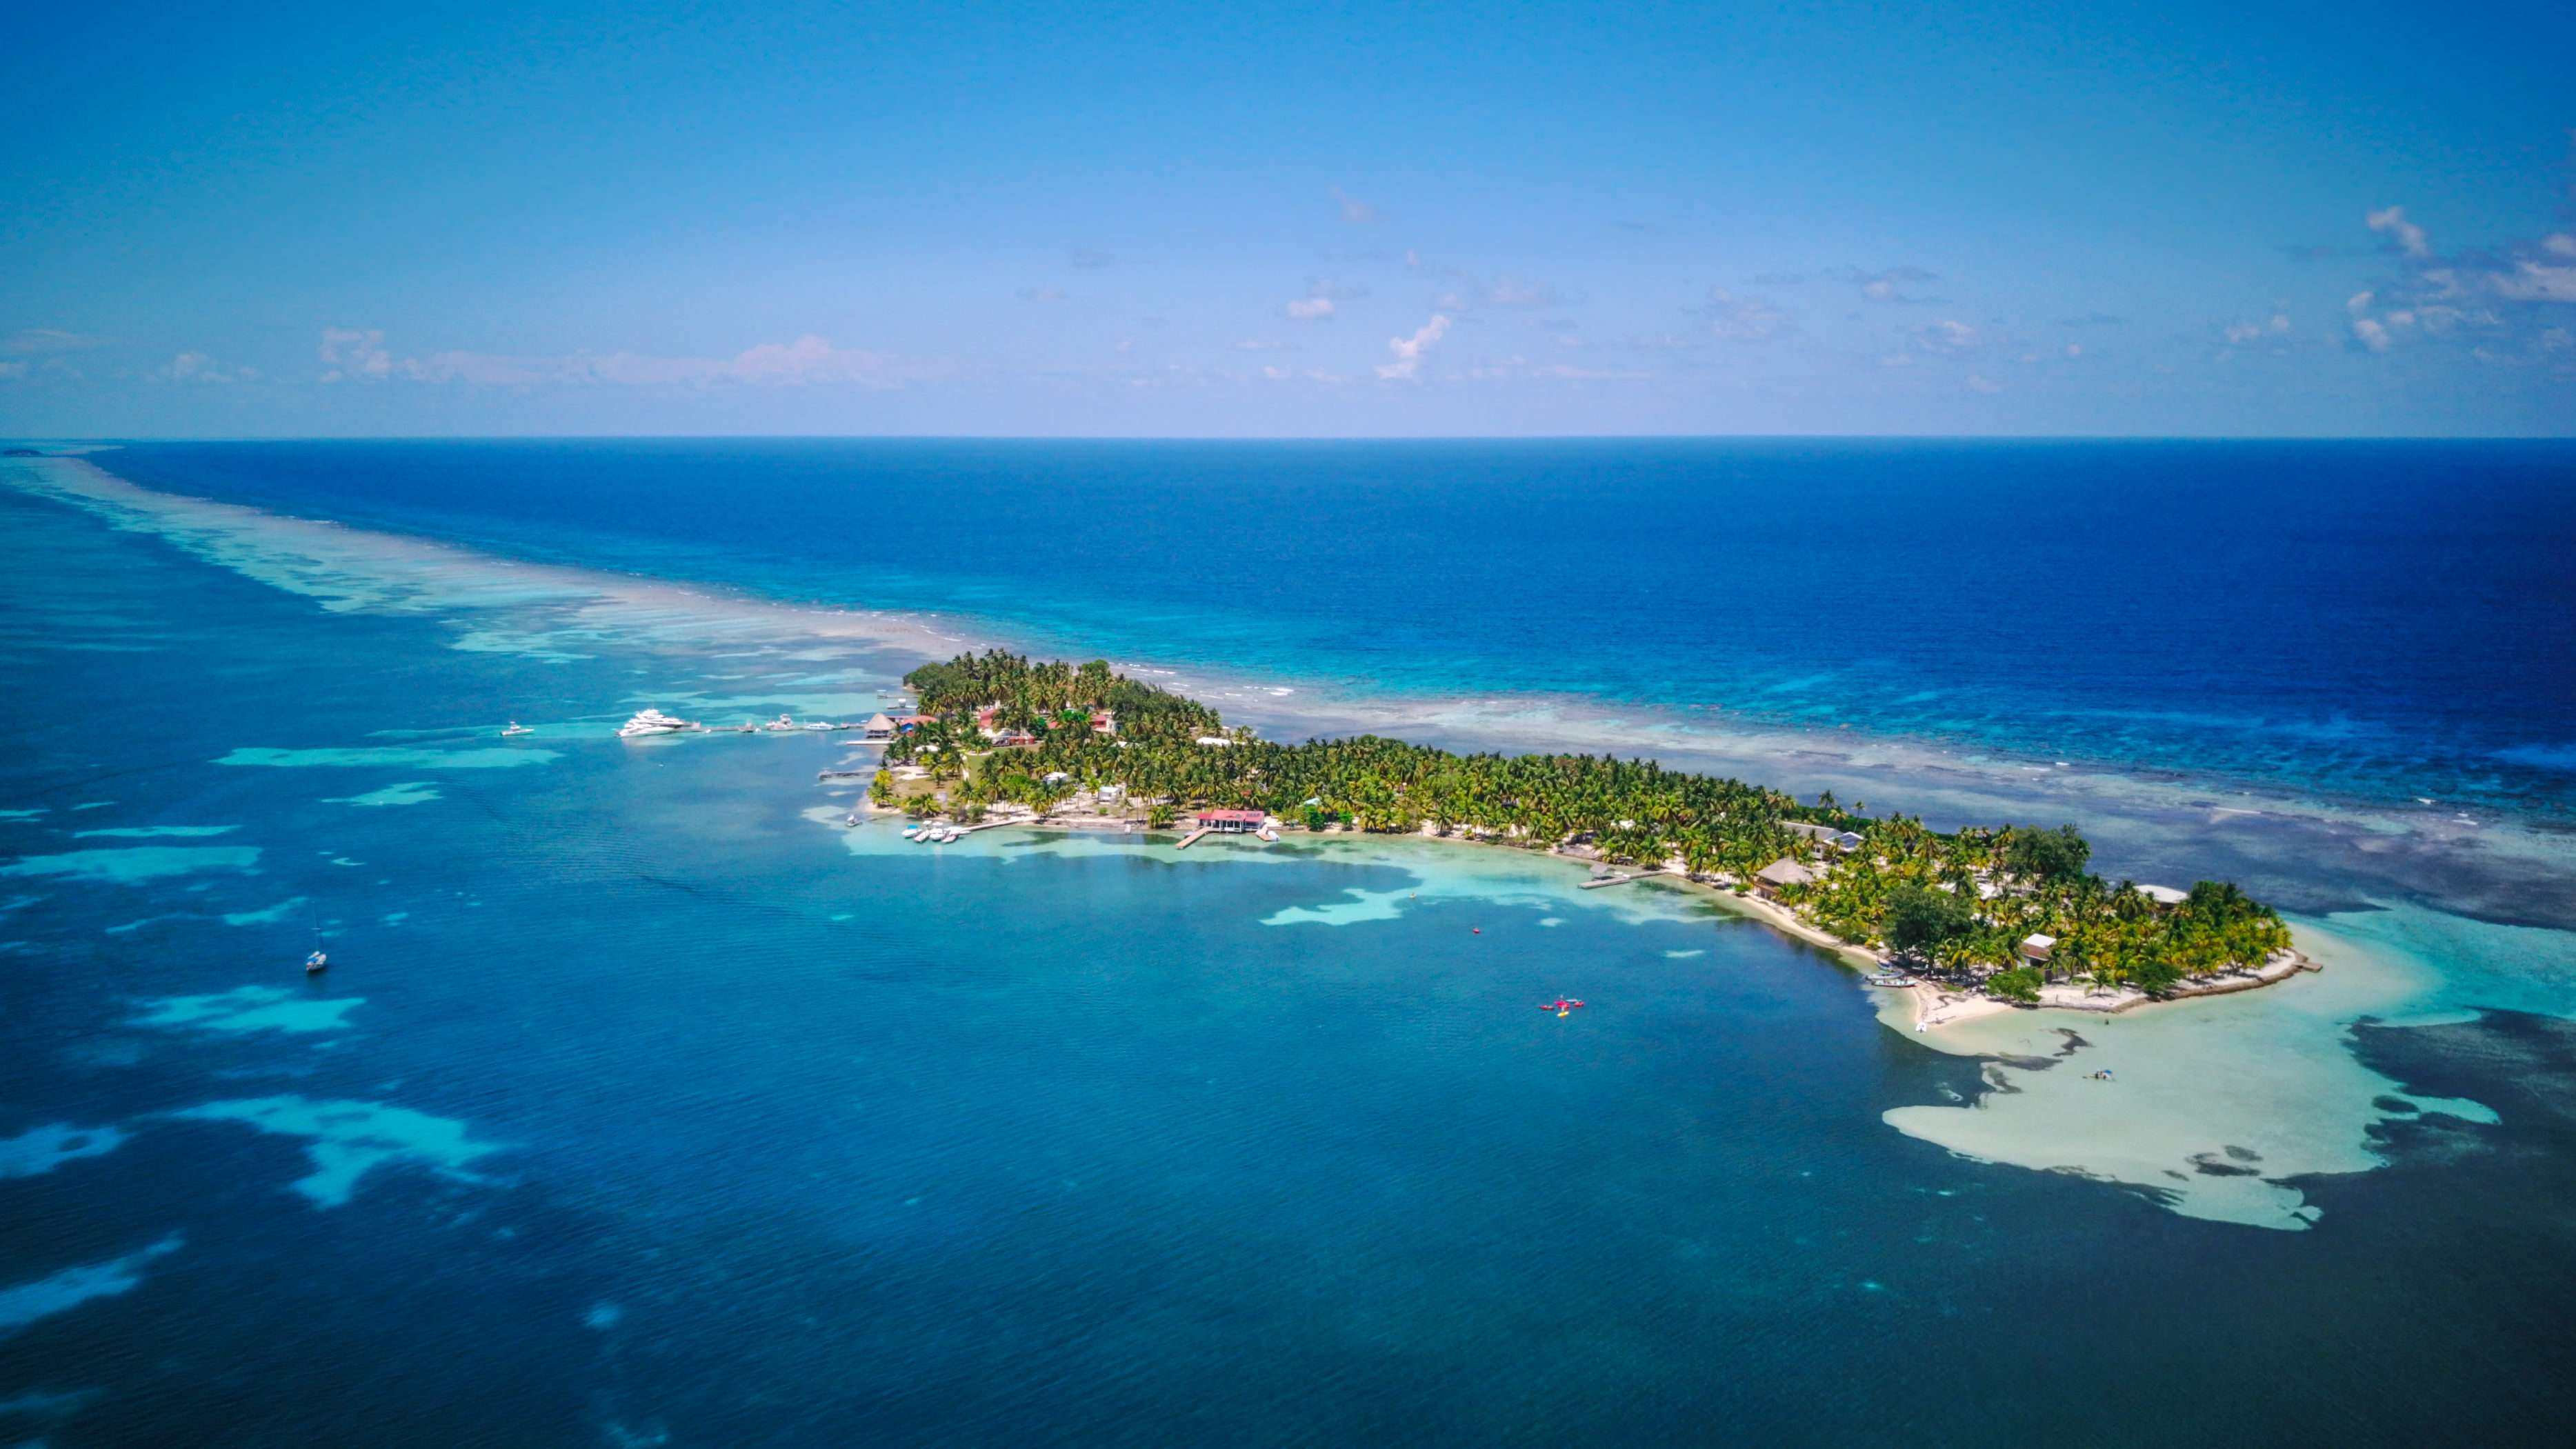 aerial photo of tropical island South Water Caye in Belize